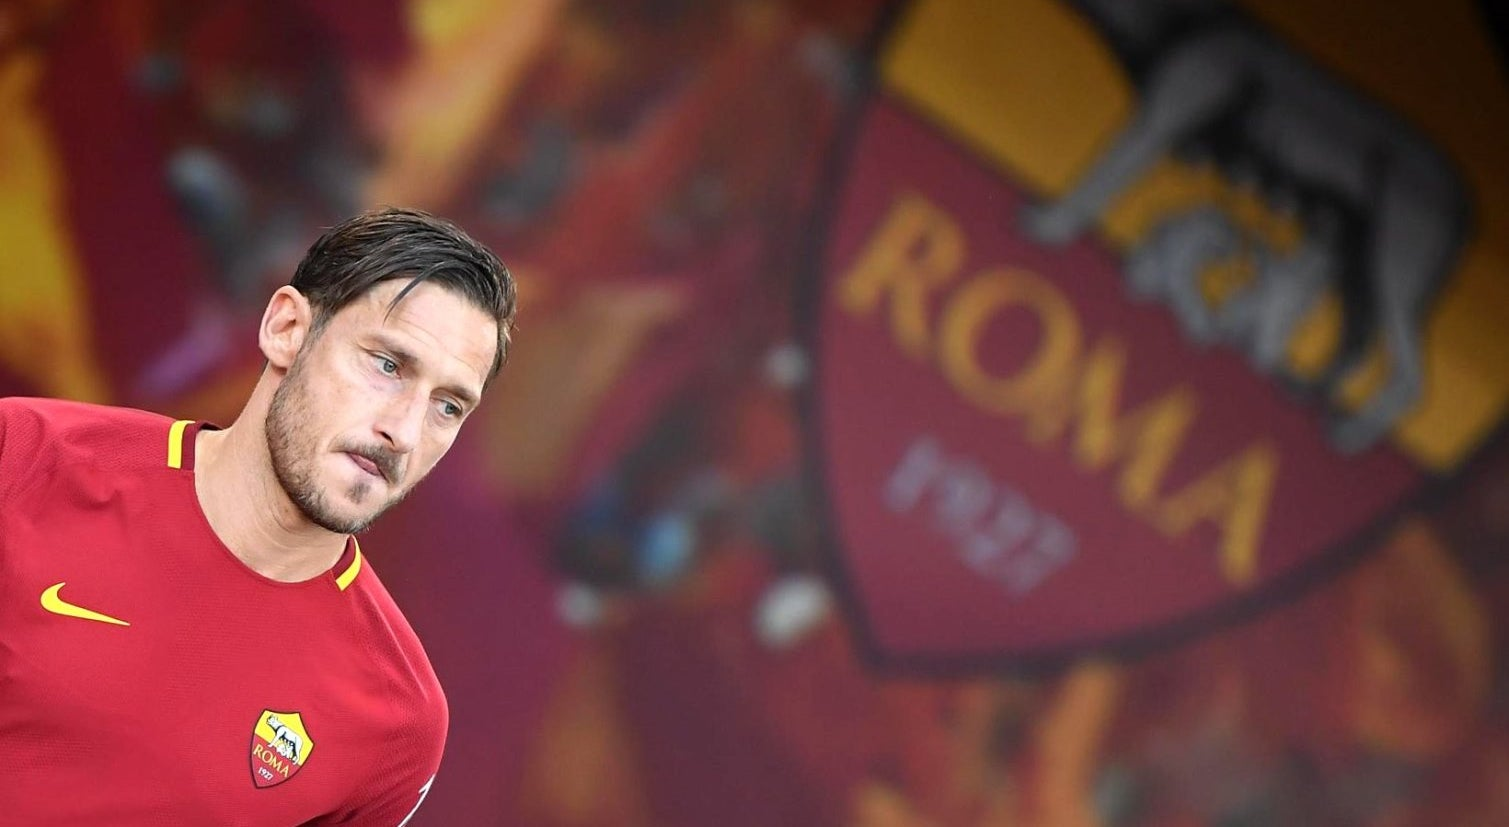 Francesco Totti assume cargo de diretor na AS Roma